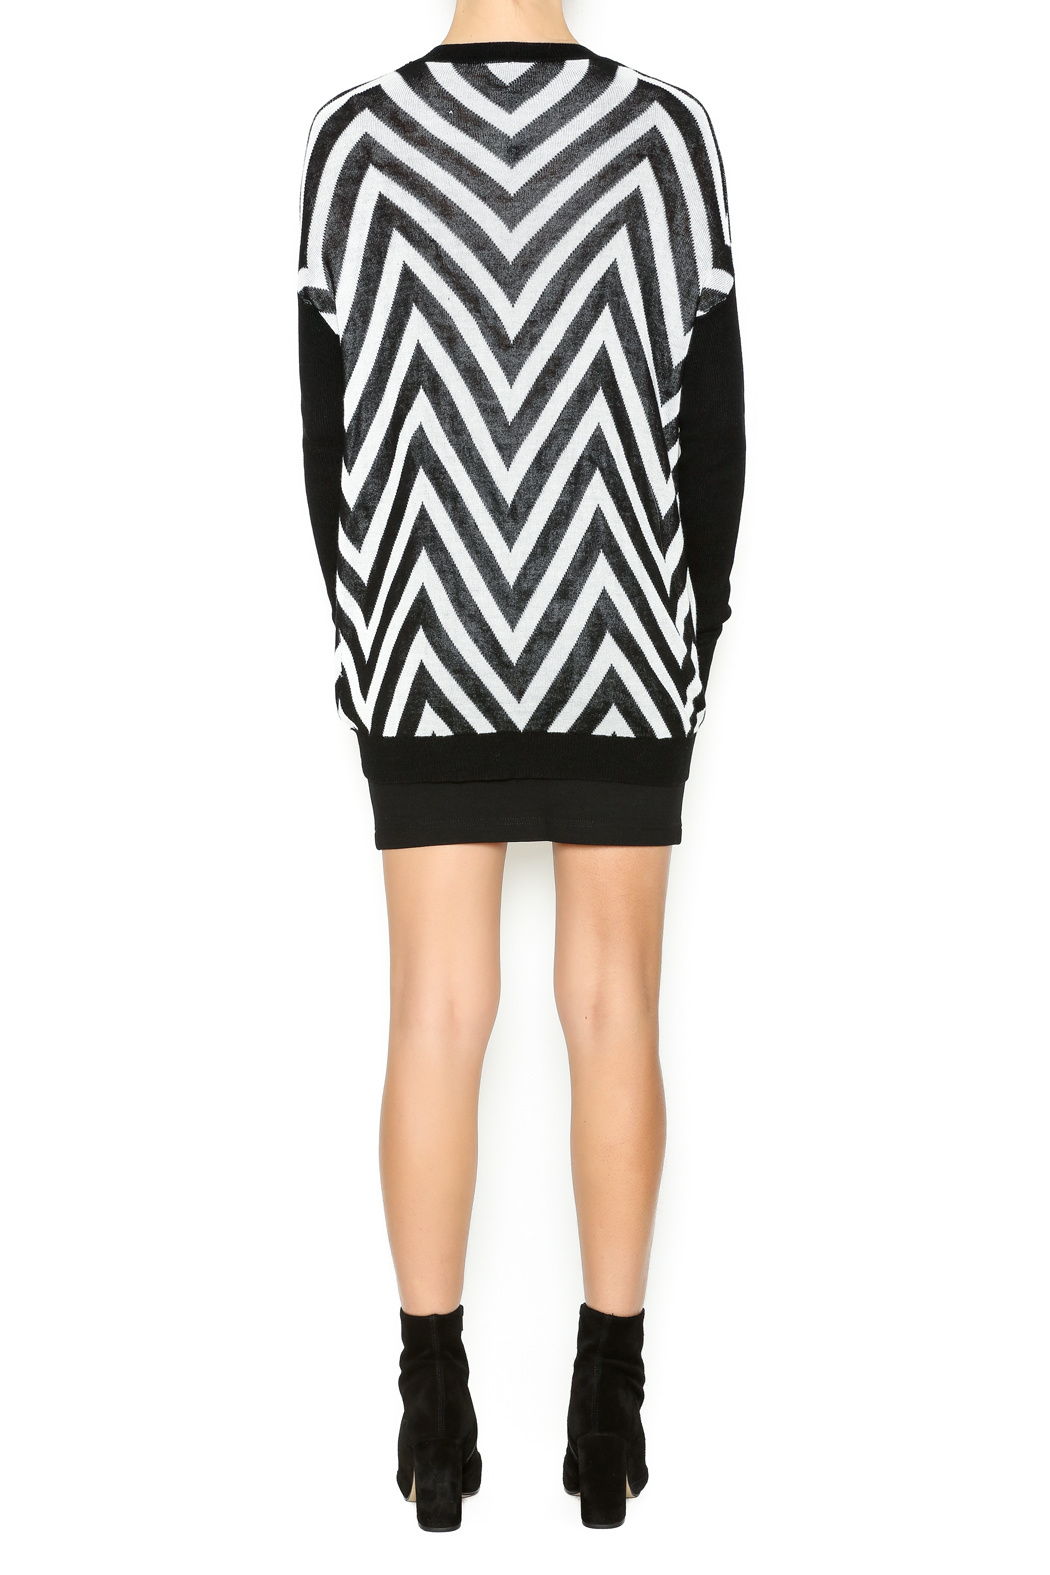 Chicos Women's Clothing On Sale Up To 90 Off Retail thredUP Chevron island fashion boutiques